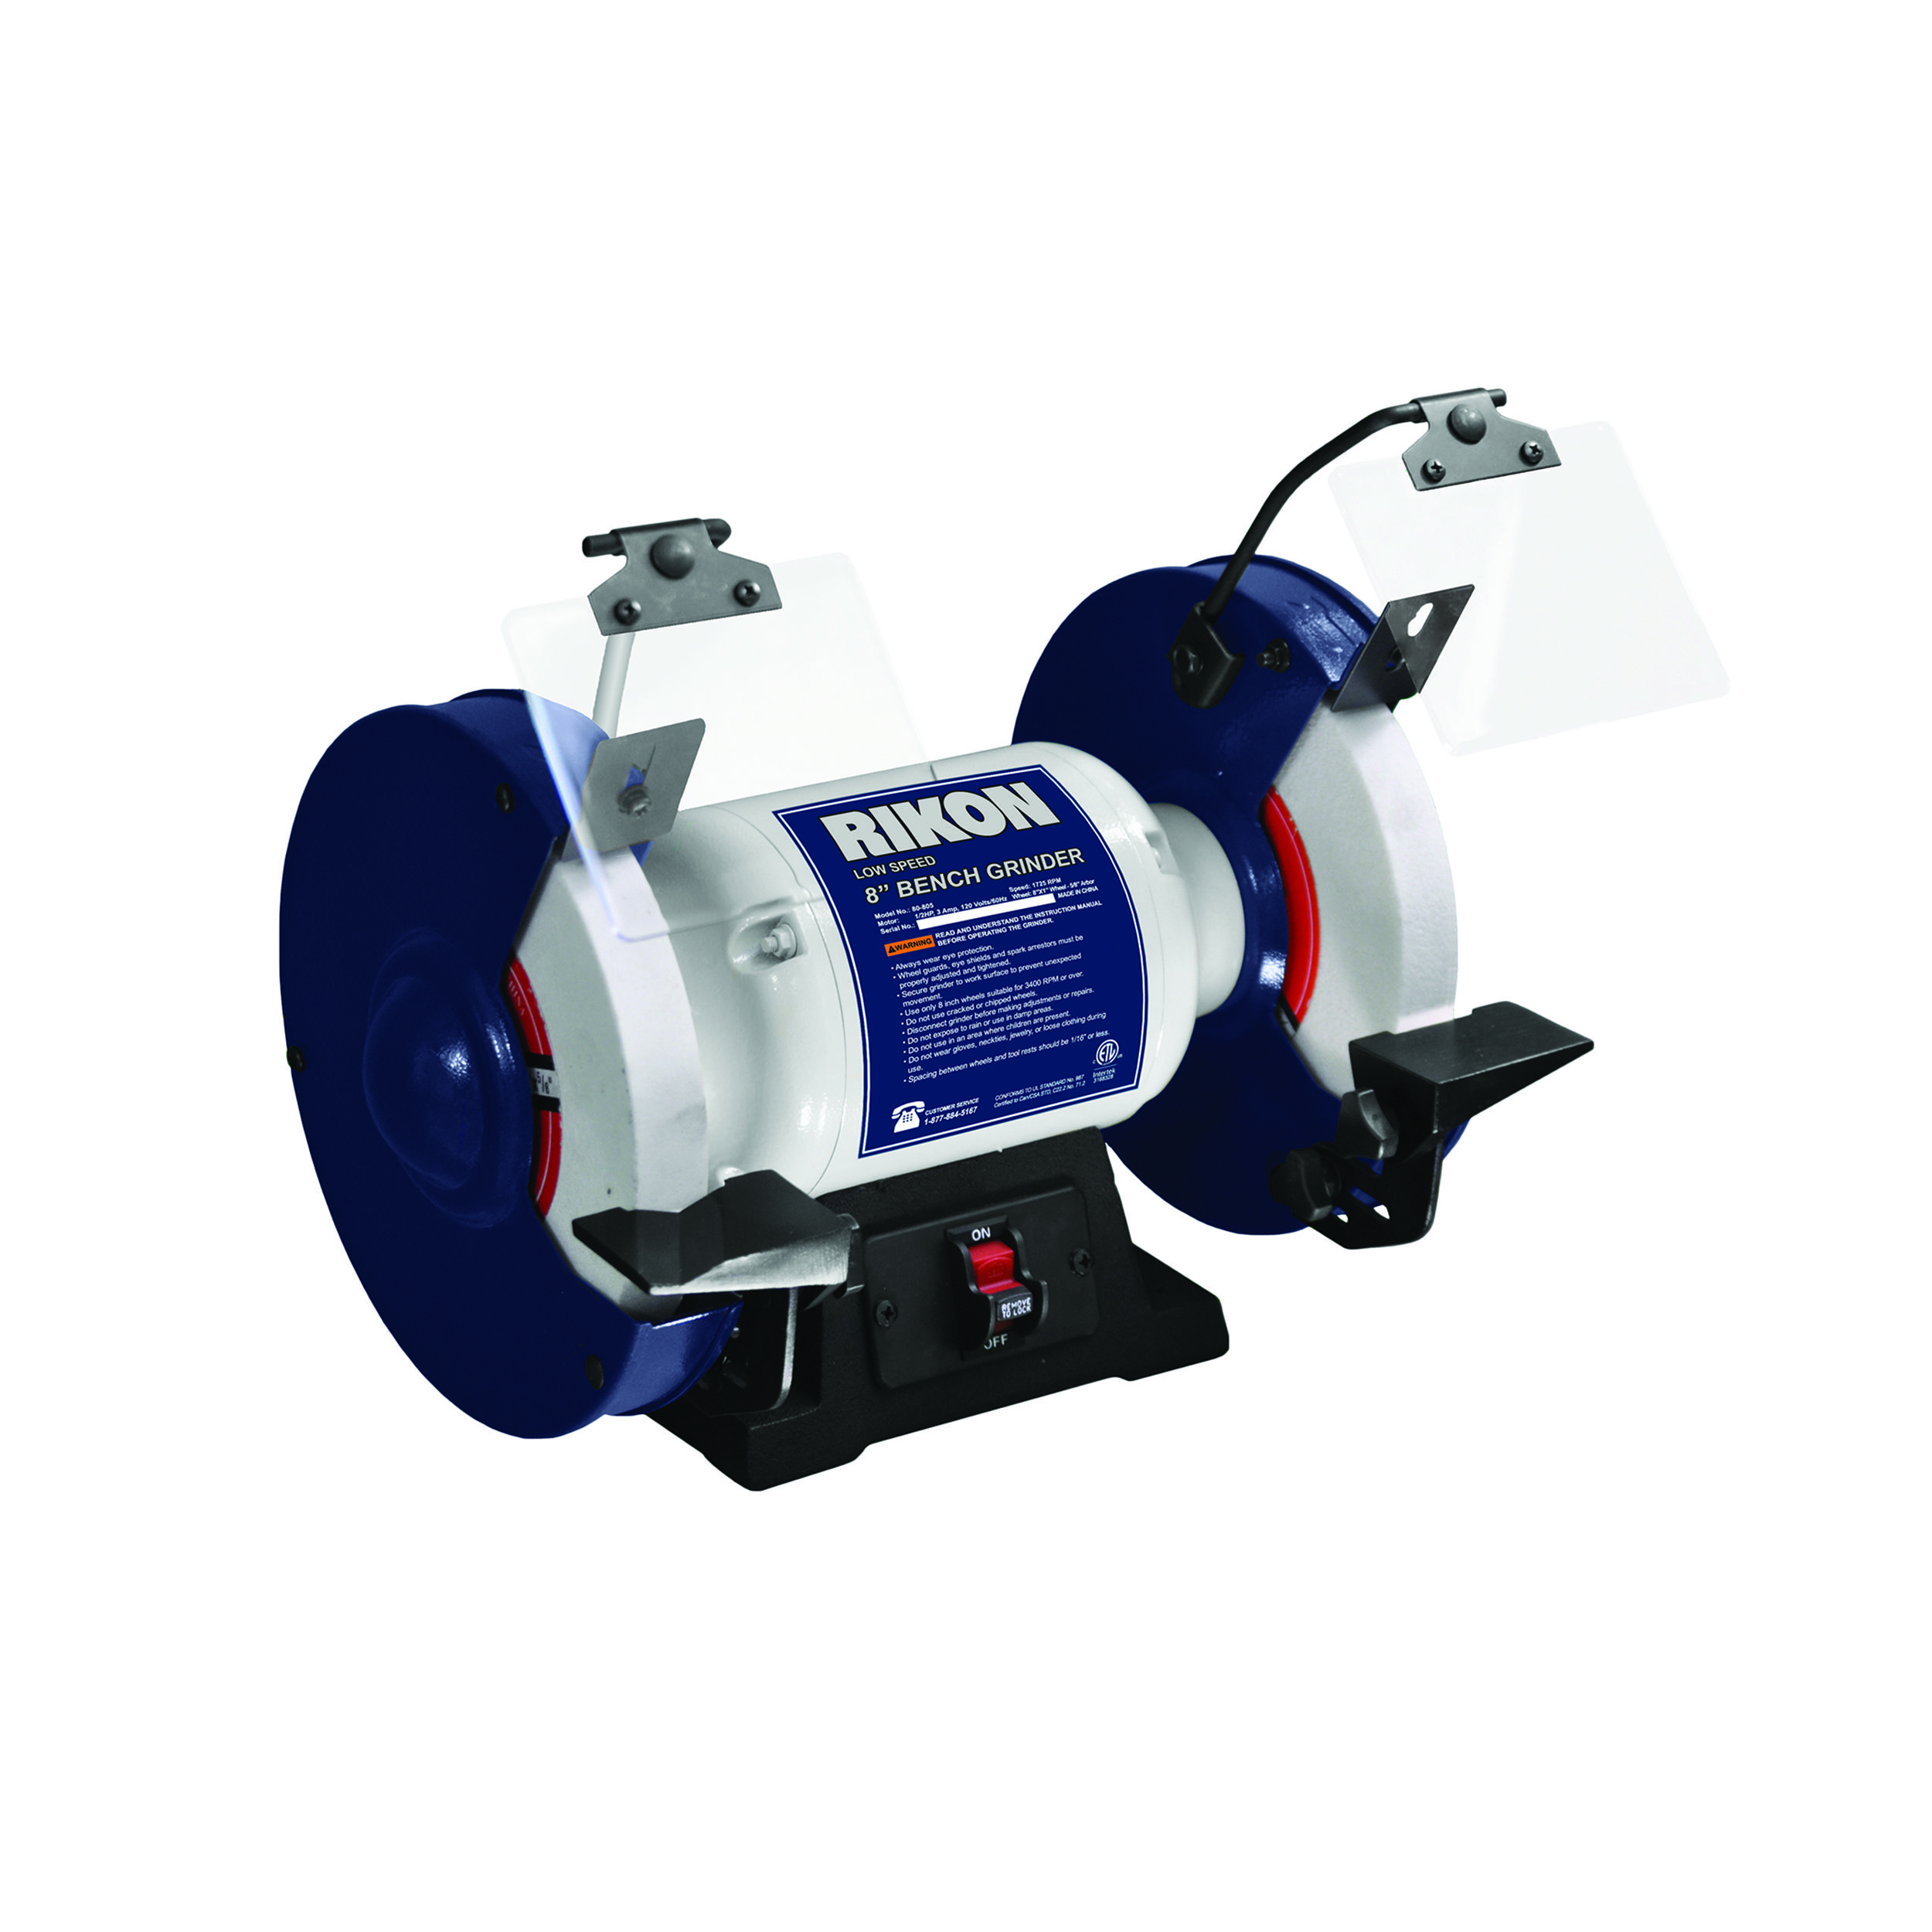 This Grinder Comes Equipped With Two 1 X 8 White Aluminum Oxide Grinding Wheels One 120 Grit Chest Woodworking Plans Electrical Hand Tools Woodworking Plans